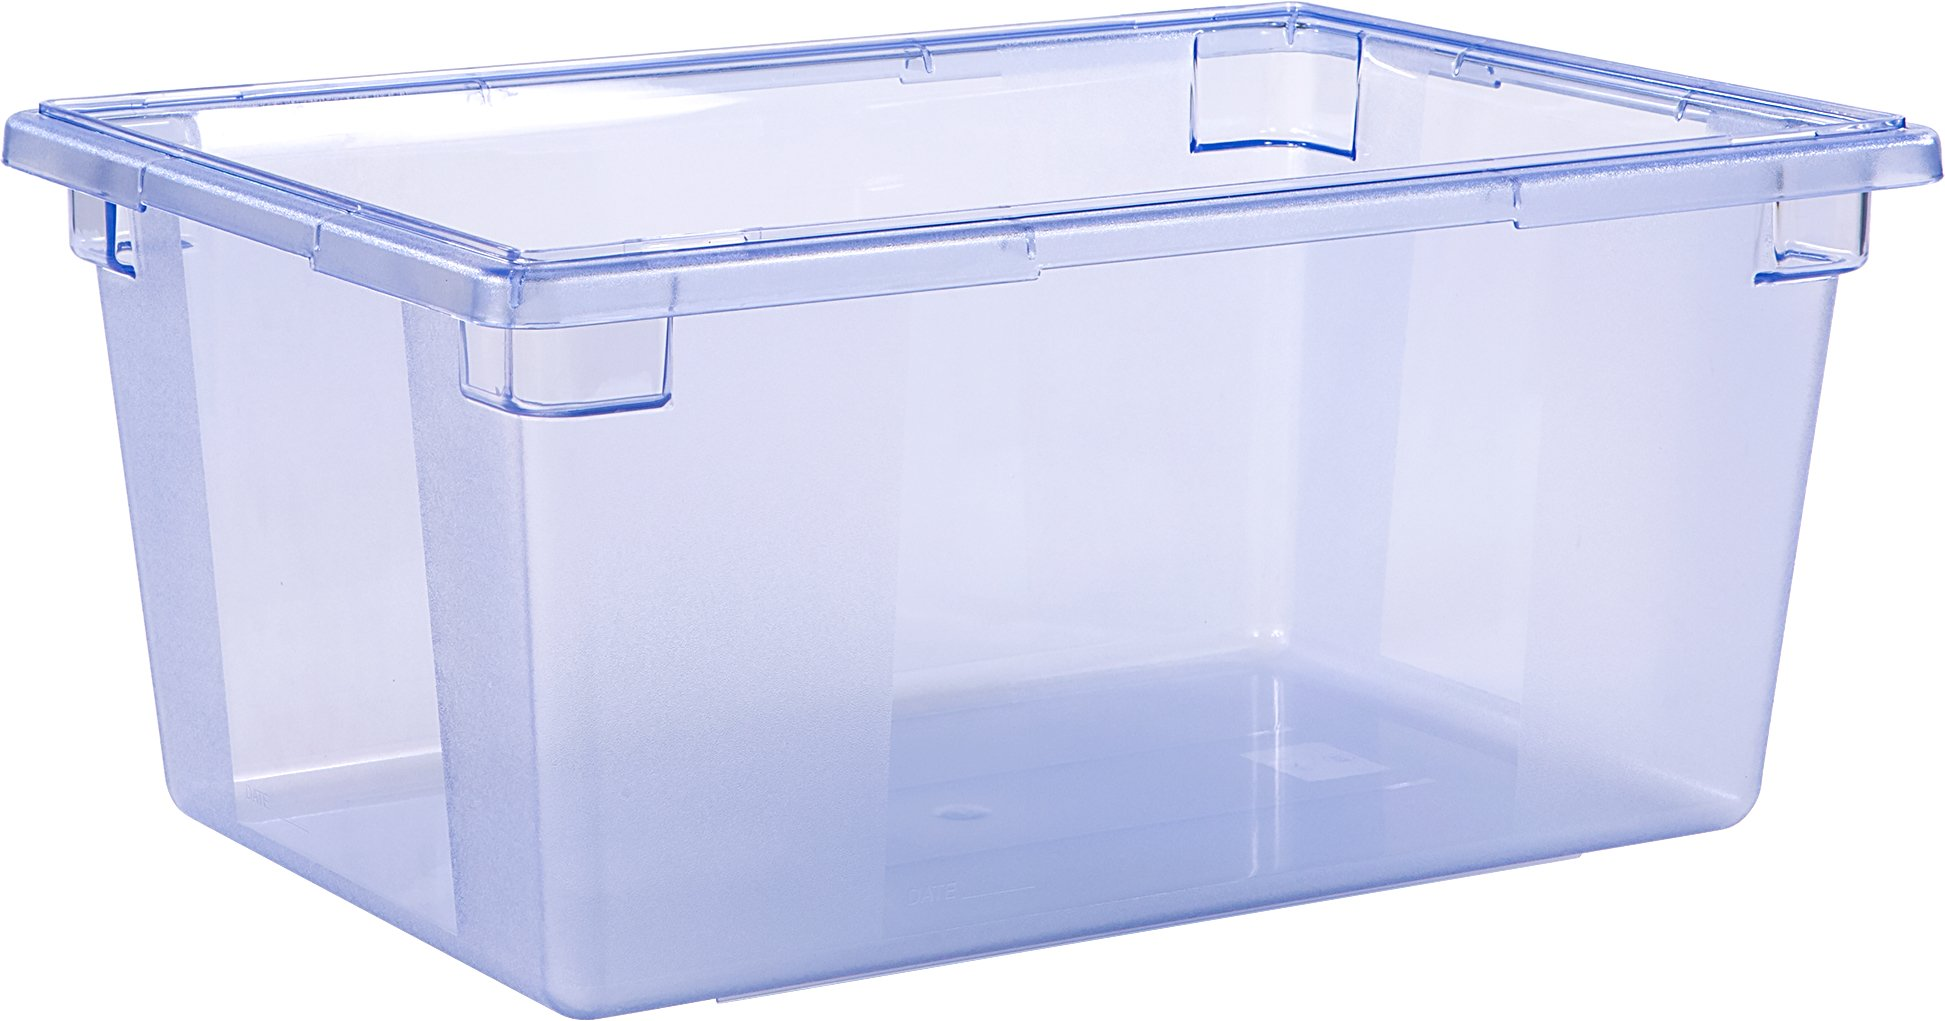 Carlisle 10623C14 StorPlus Color-Coded Food Storage Container Only, 16.6 Gallon, Blue (Pack of 3)